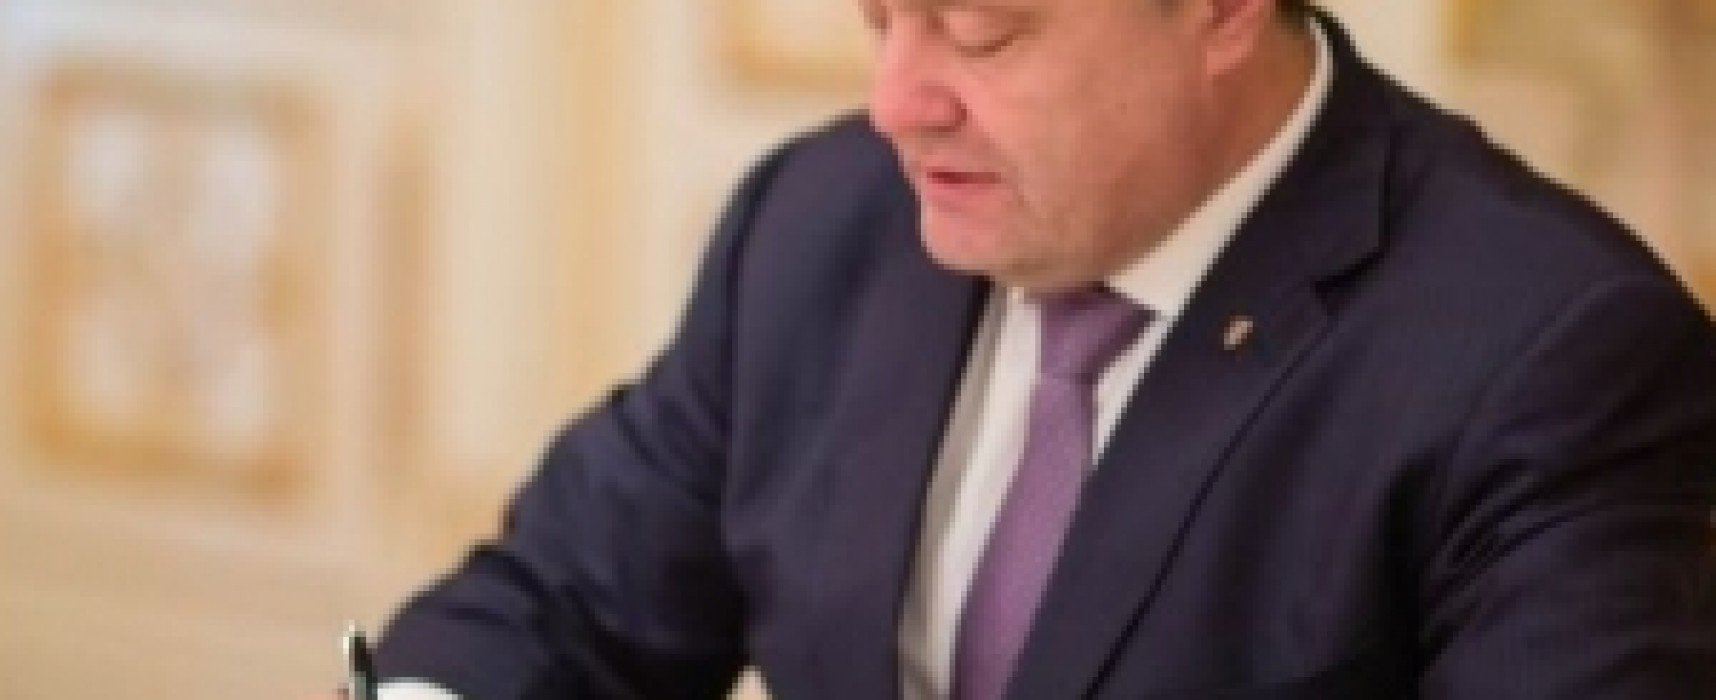 "Fake: Poroshenko Asks Verkhovna Rada to Classify Budget as ""Secret"""